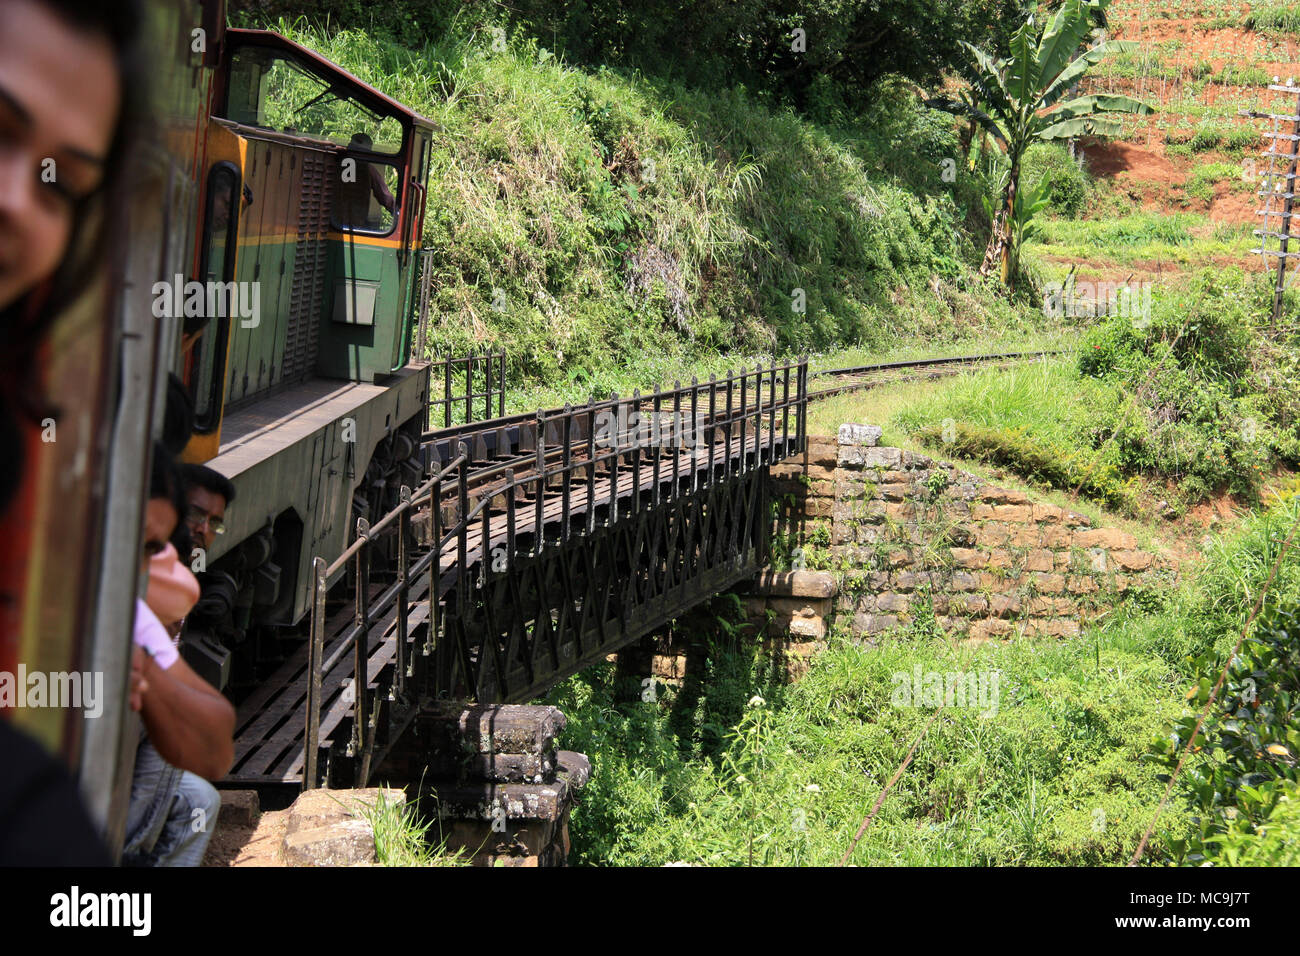 Taking a scenic train ride from Ella to Kandy, passing a thrilling truss bridge - Stock Image